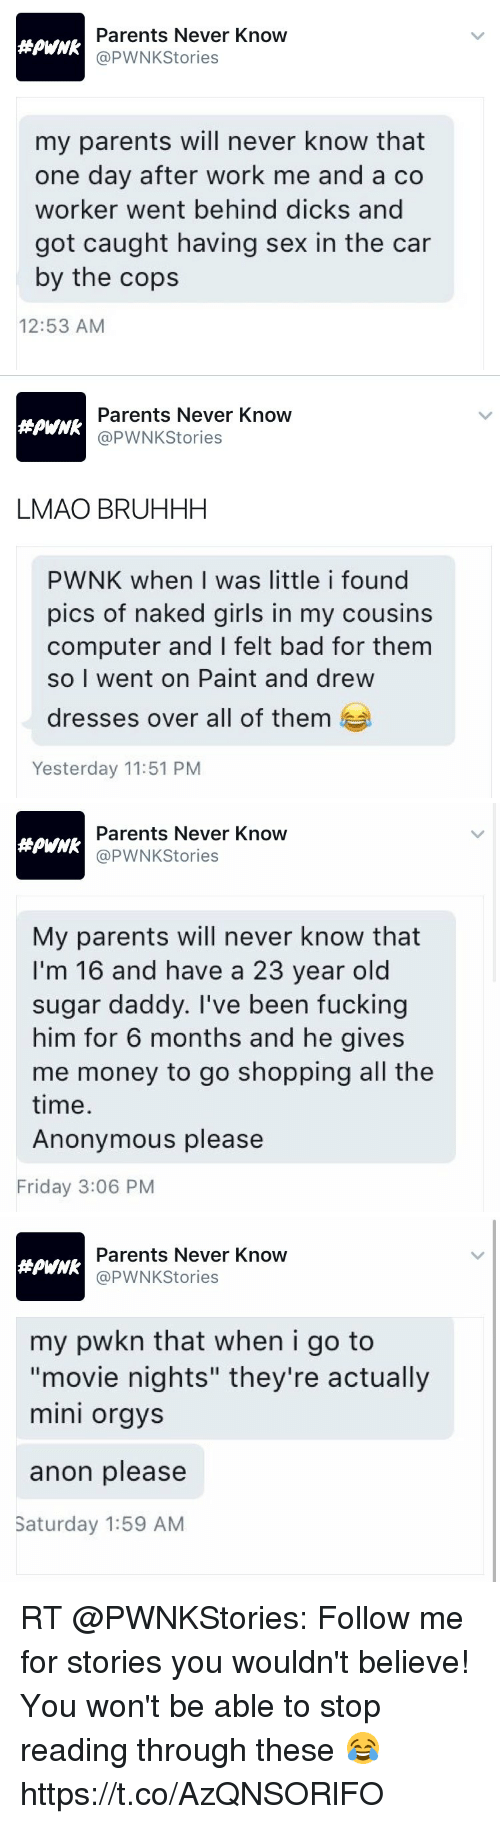 "Bad, Cars, and Dicks: Parents Never Know  @PWNKStories  my parents will never know that  one day after work me and a co  worker went behind dicks and  got caught having sex in the car  by the cops  12:53 AM   Parents Never Know  @PWNKStories  #PHNk  LMAO BRUHHH  PWNK when I was little i found  pics of naked girls in my cousins  computer and I felt bad for them  so I went on Paint and drew  dresses over all of them  Yesterday 11:51 PM   Parents Never Know  @PWNKStories  My parents will never know that  I'm 16 and have a 23 year old  sugar daddy. I've been fucking  him for 6 months and he gives  me money to go shopping all the  time  Anonymous please  Friday 3:06 PM   Parents Never Know  @PWNKStories  my pwkn that when i go to  ""movie nights"" they're actually  mini orgys  anon please  Saturday 1:59 AM RT @PWNKStories: Follow me for stories you wouldn't believe! You won't be able to stop reading through these 😂 https://t.co/AzQNSORlFO"